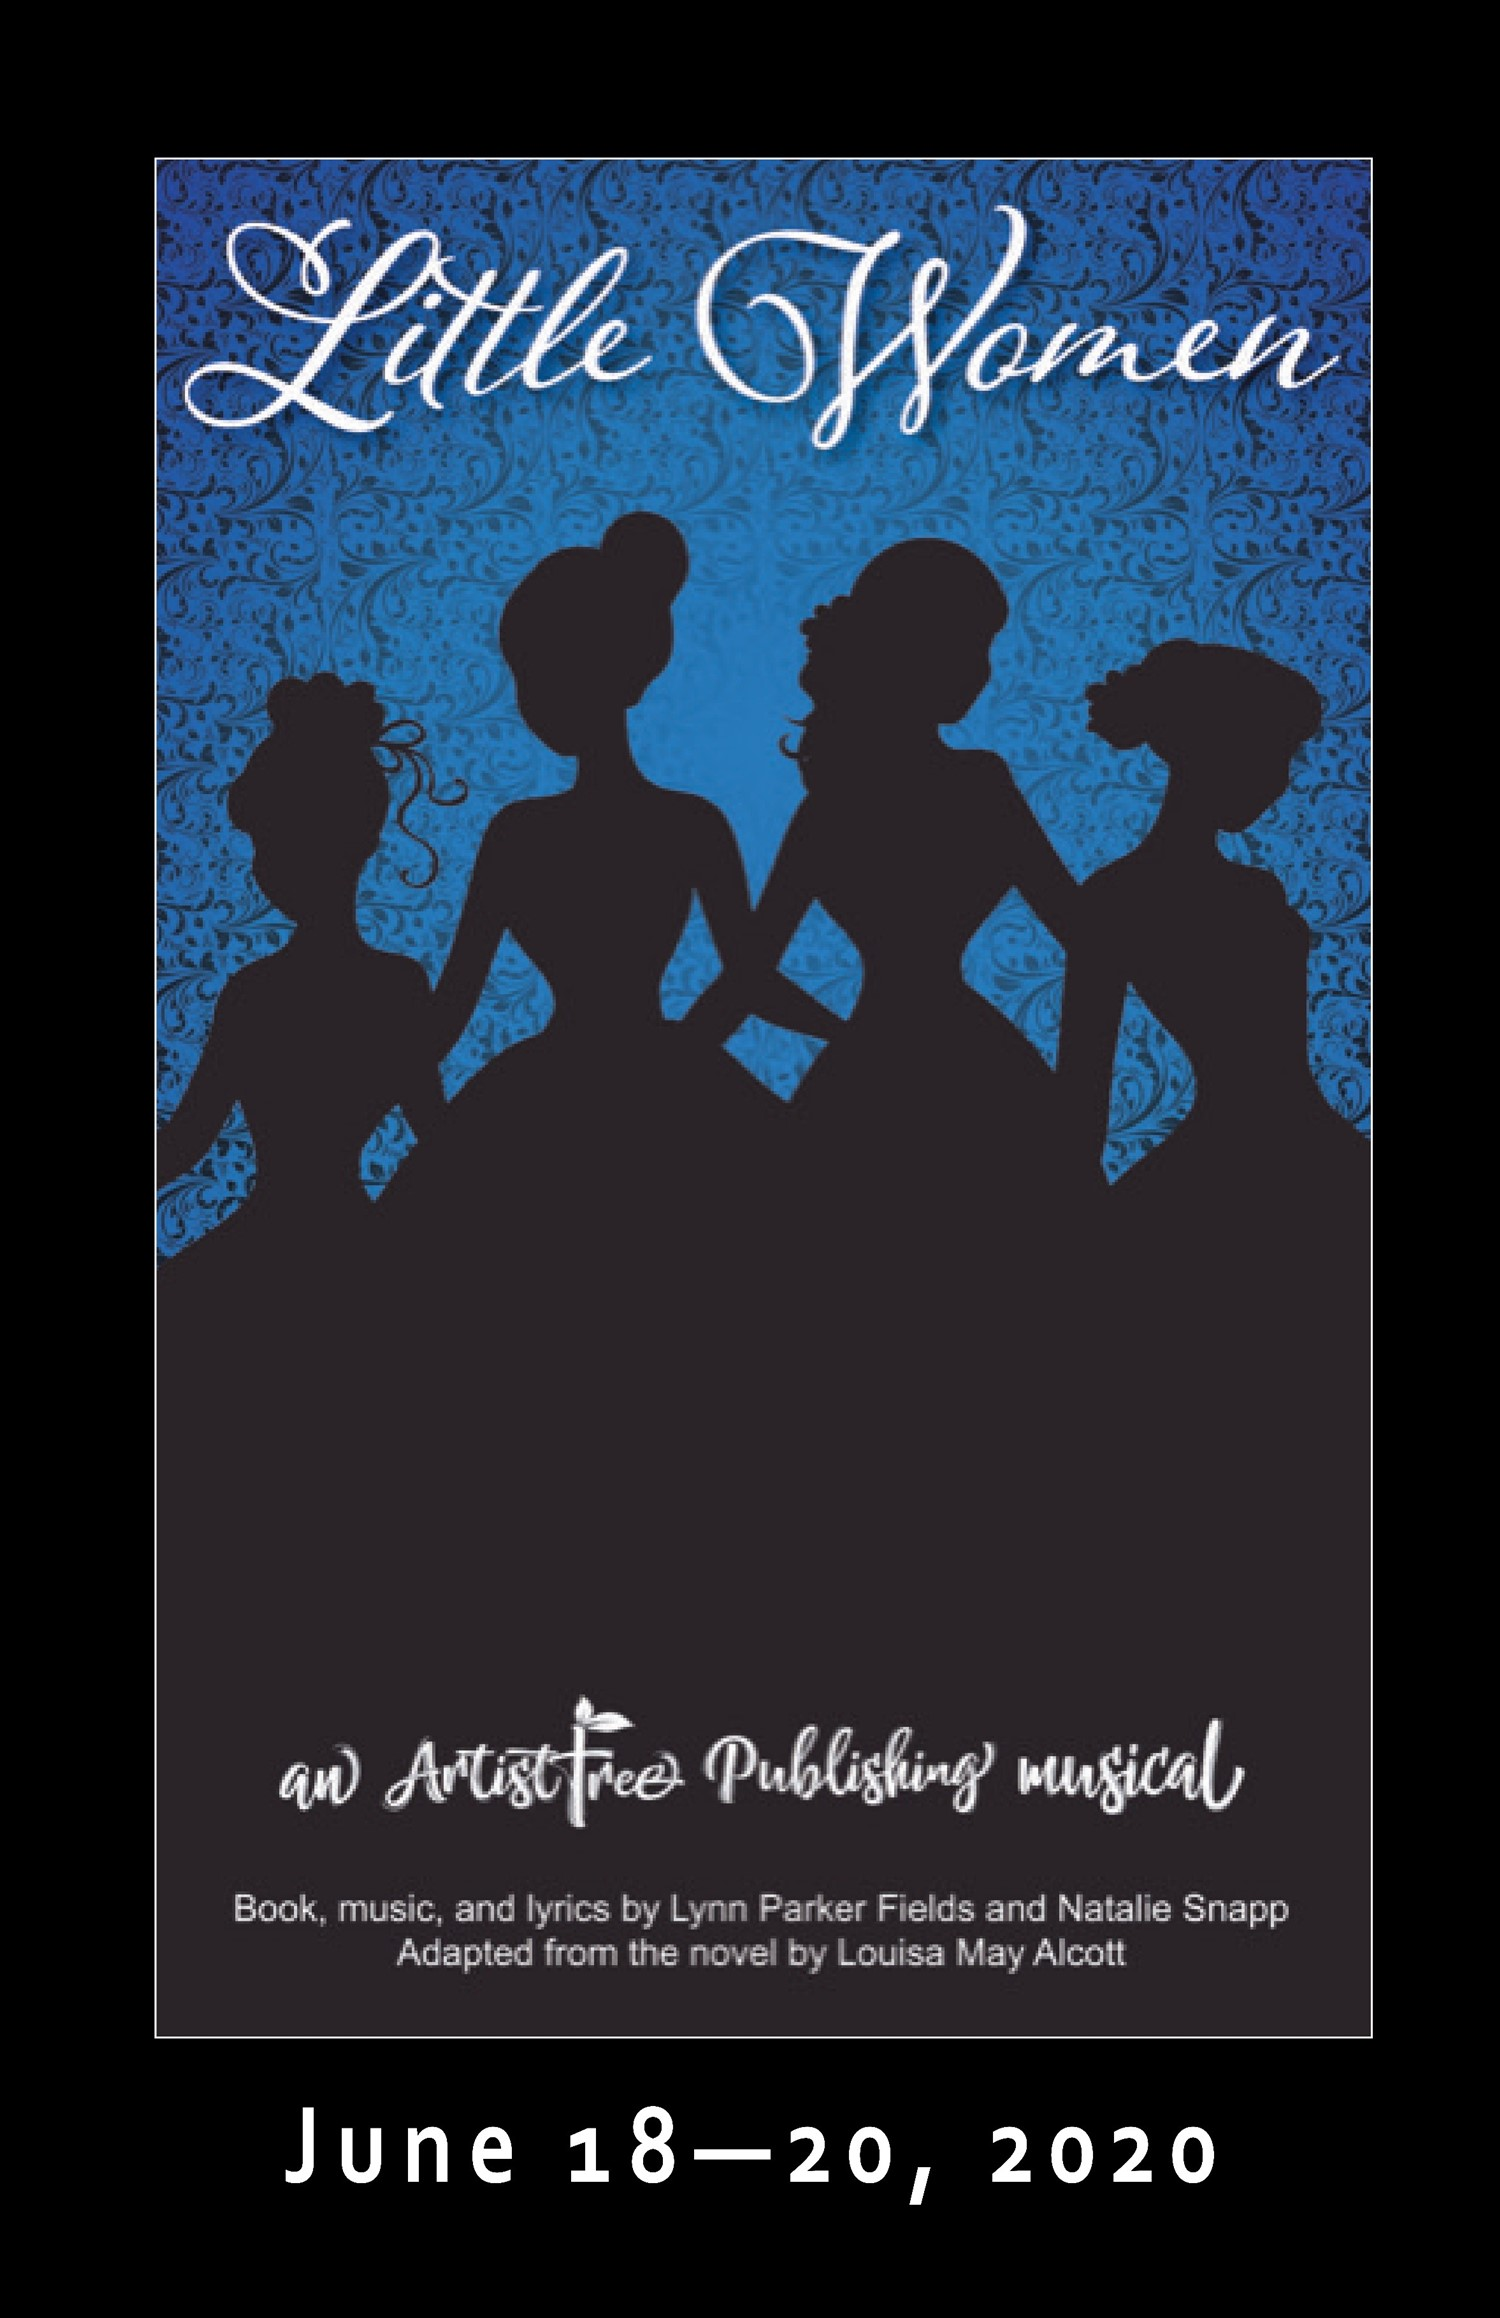 Little Women Thursday, June 18, 2020 @ 7:30 pm on Jun 18, 19:30@Spiritual Twist Productions - Pick a seat, Buy tickets and Get information on Spiritual Twist Productions tickets.spiritualtwist.com